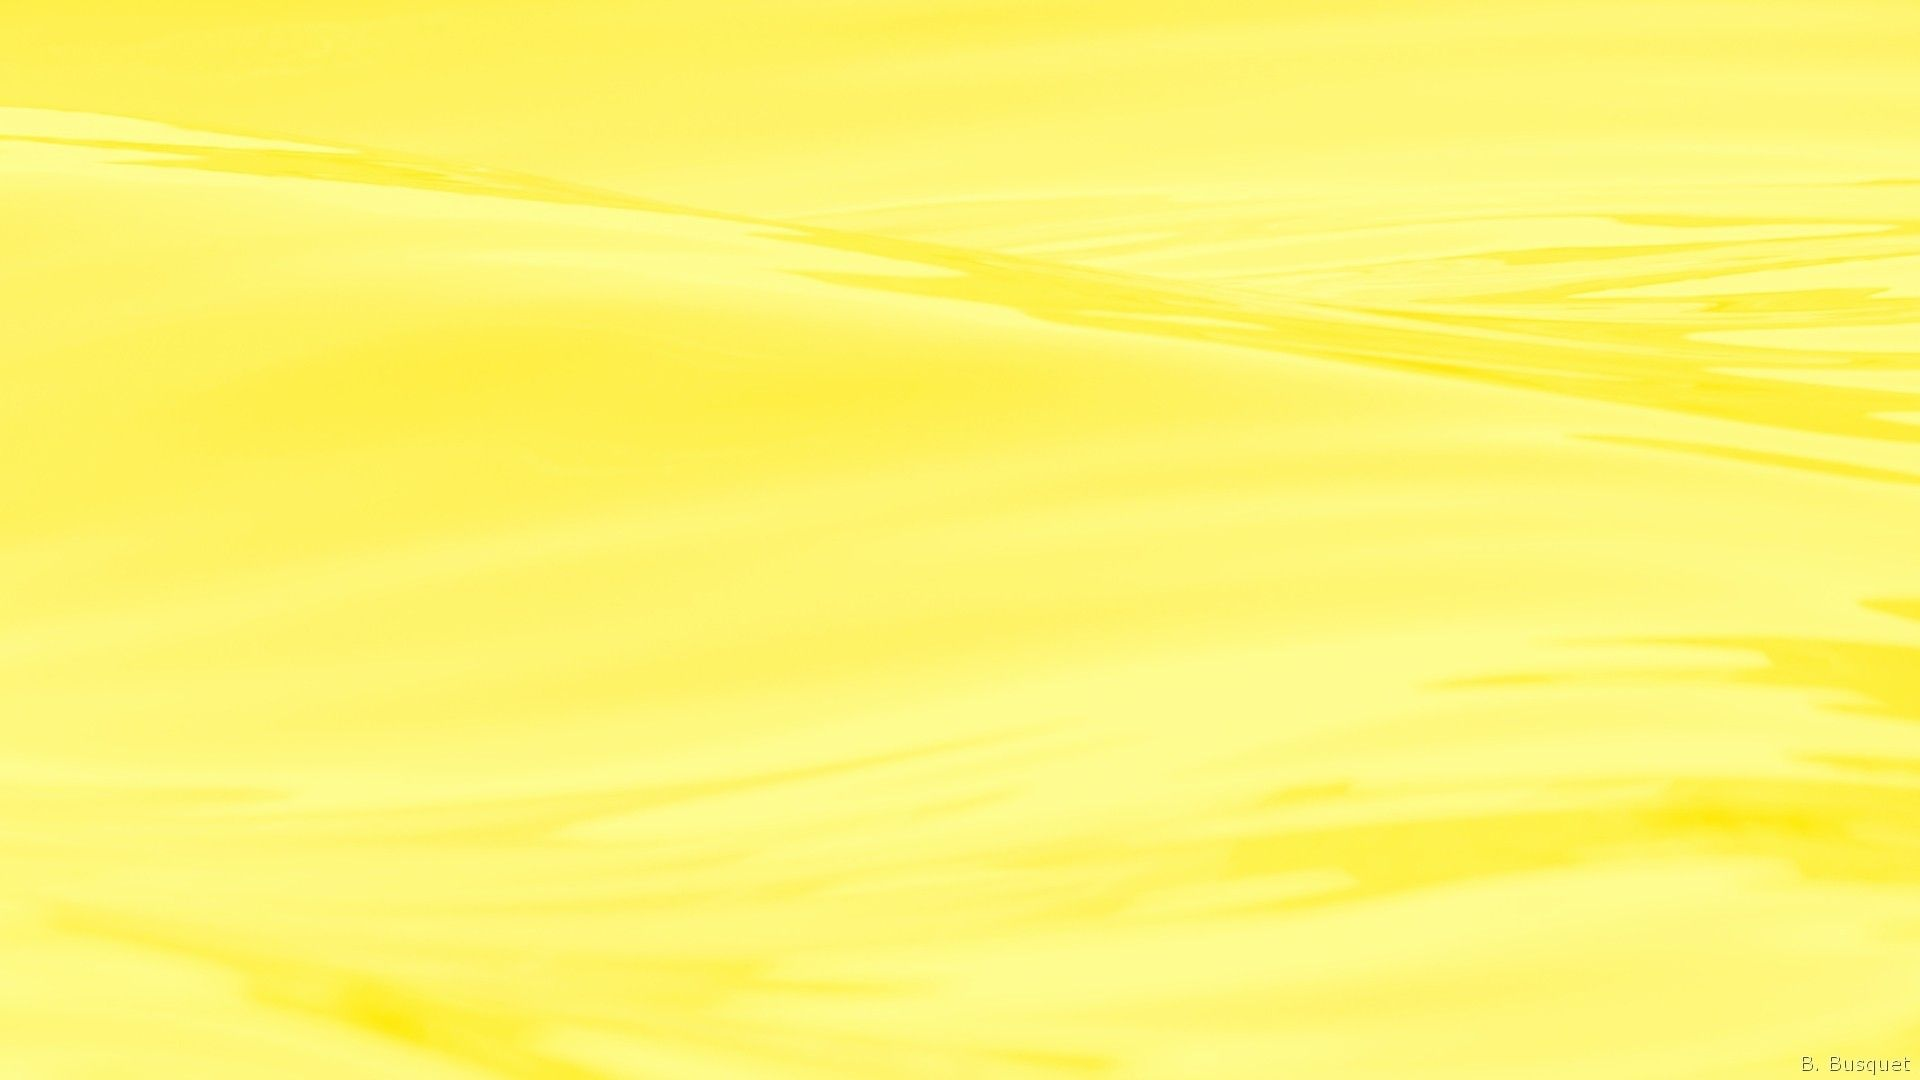 Yellow Aesthetic Computer Wallpapers Top Free Yellow